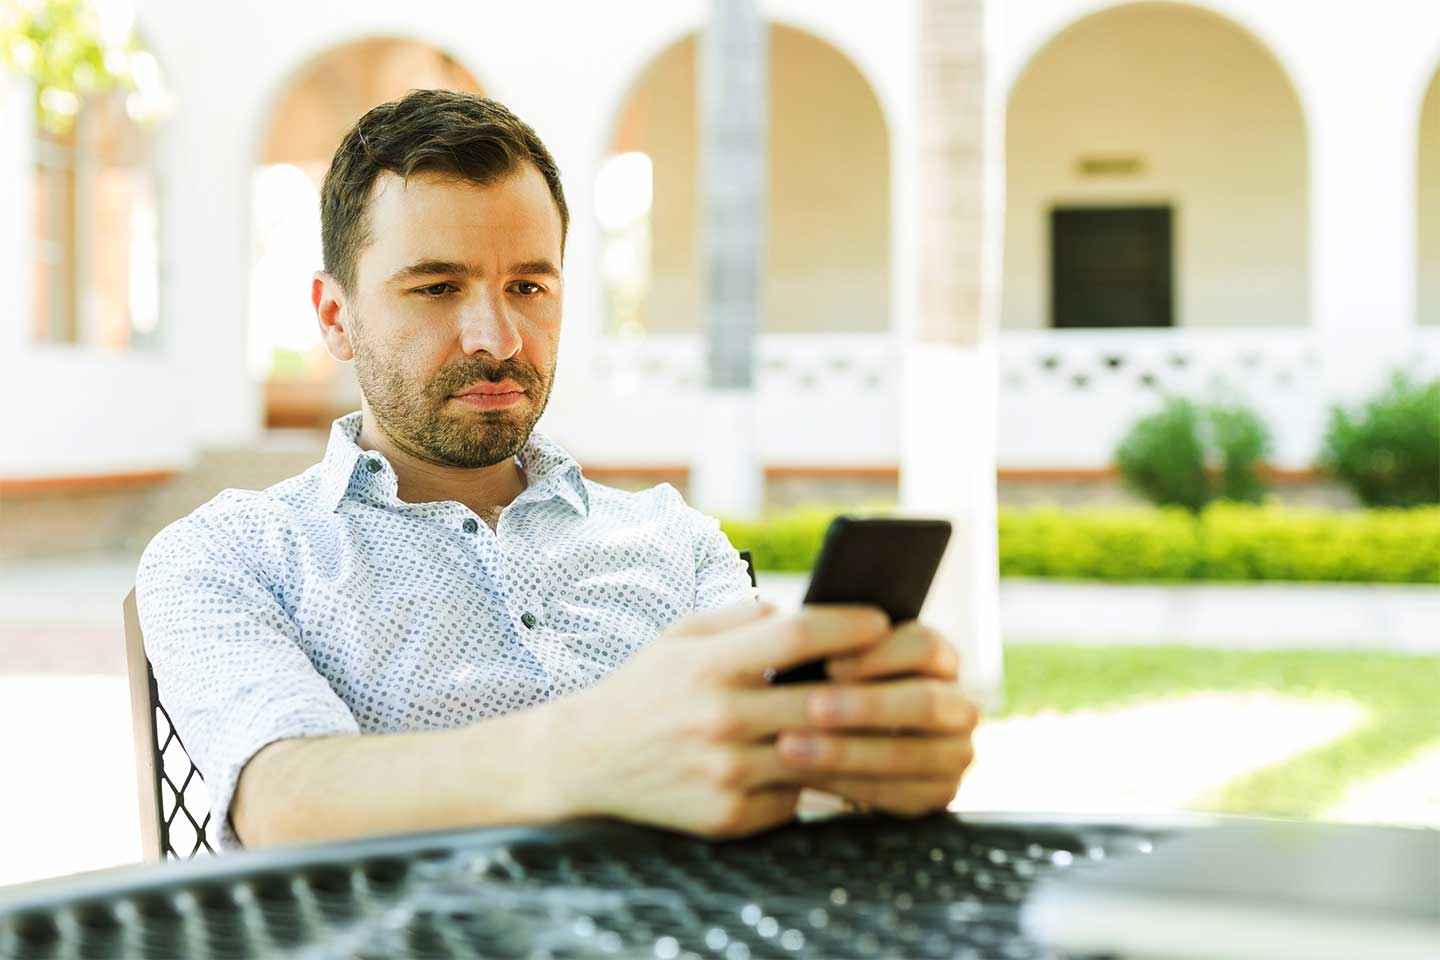 Photo of man checking email on his phone